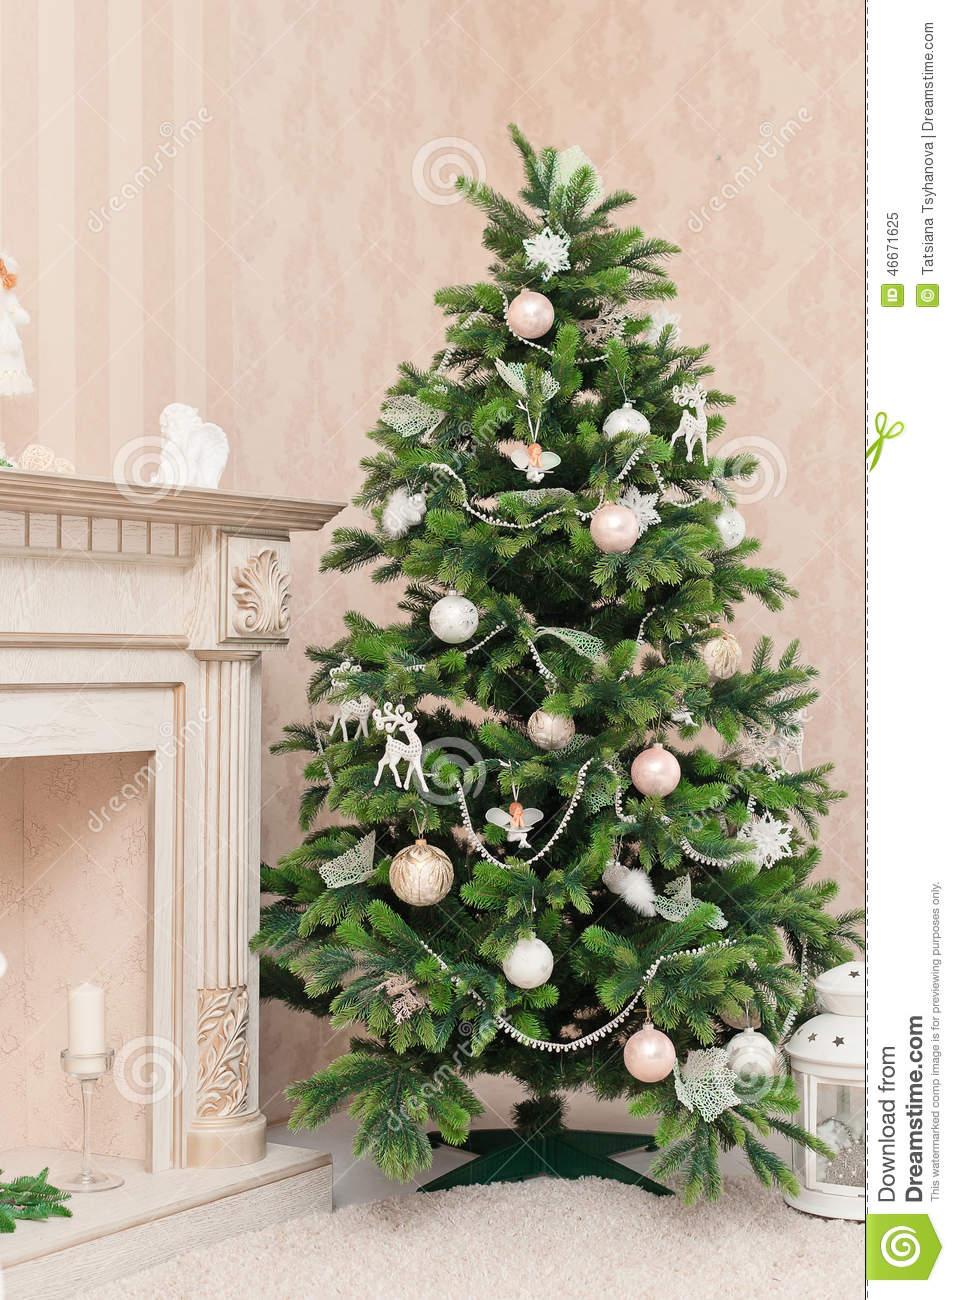 Ornamental christmas trees - Christmas Tree With White Ornaments In Vintage Interior